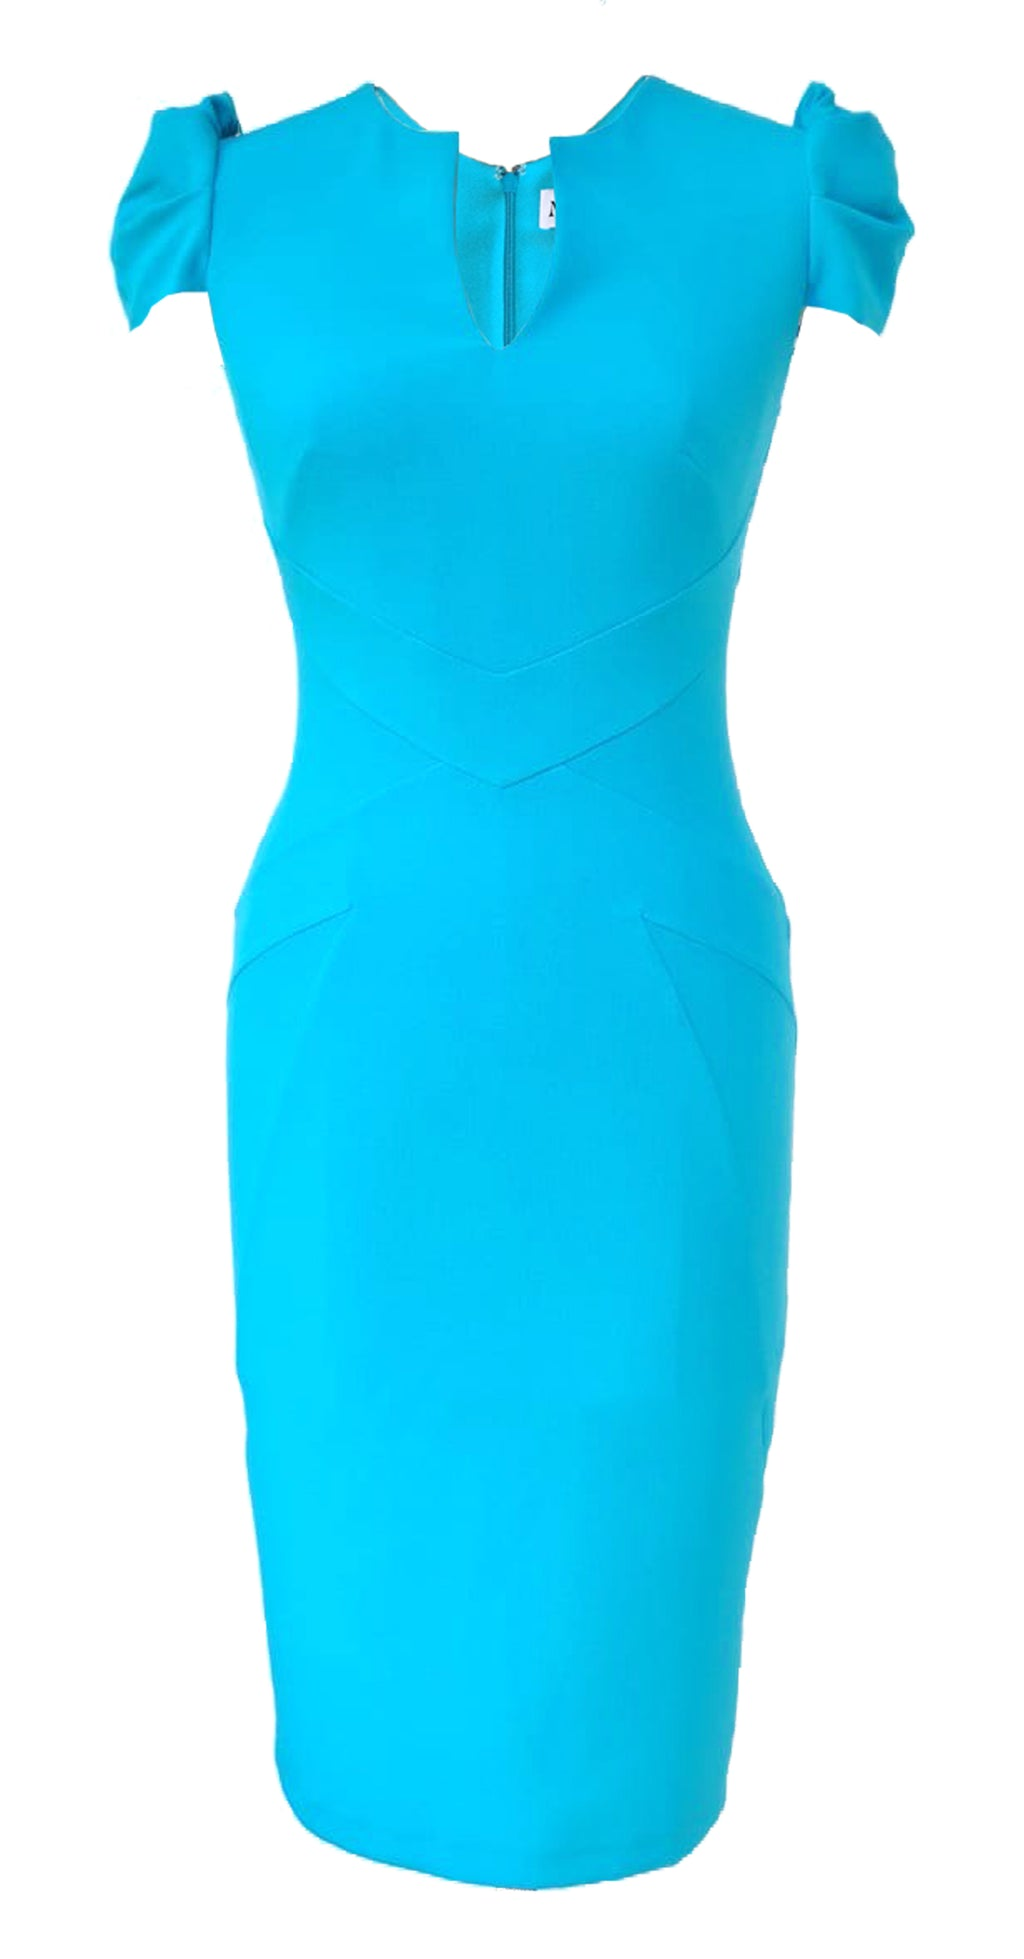 Cosmo Dress DRC352 Lagoona Blue Crepe